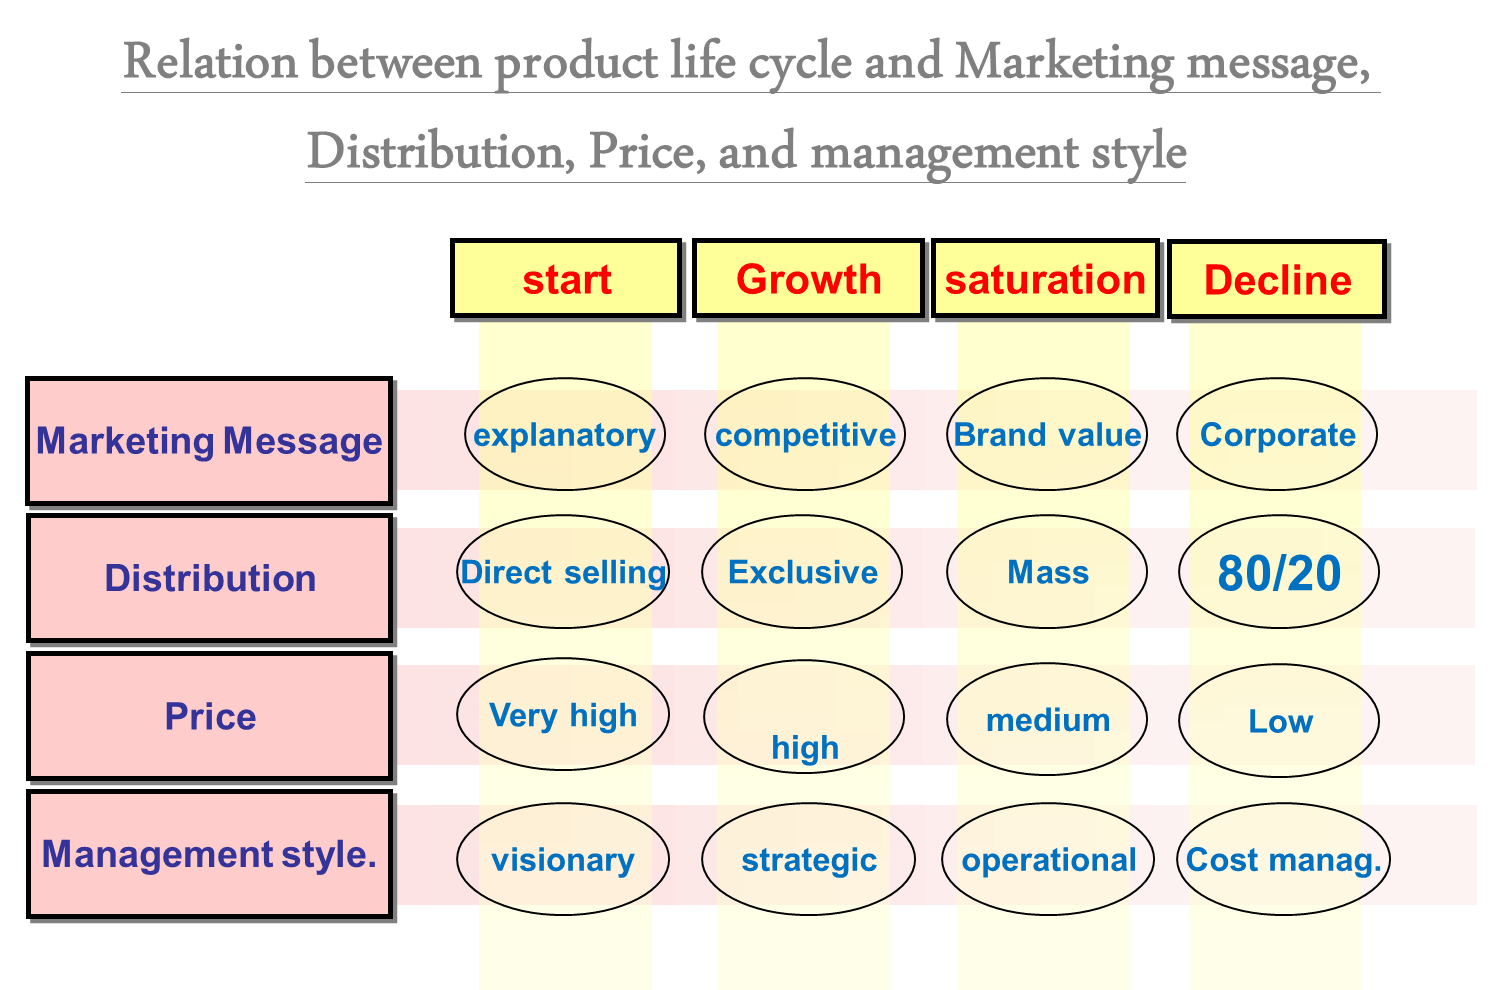 Relation between product life cycle and Marketing message, Distribution, Price, and management style